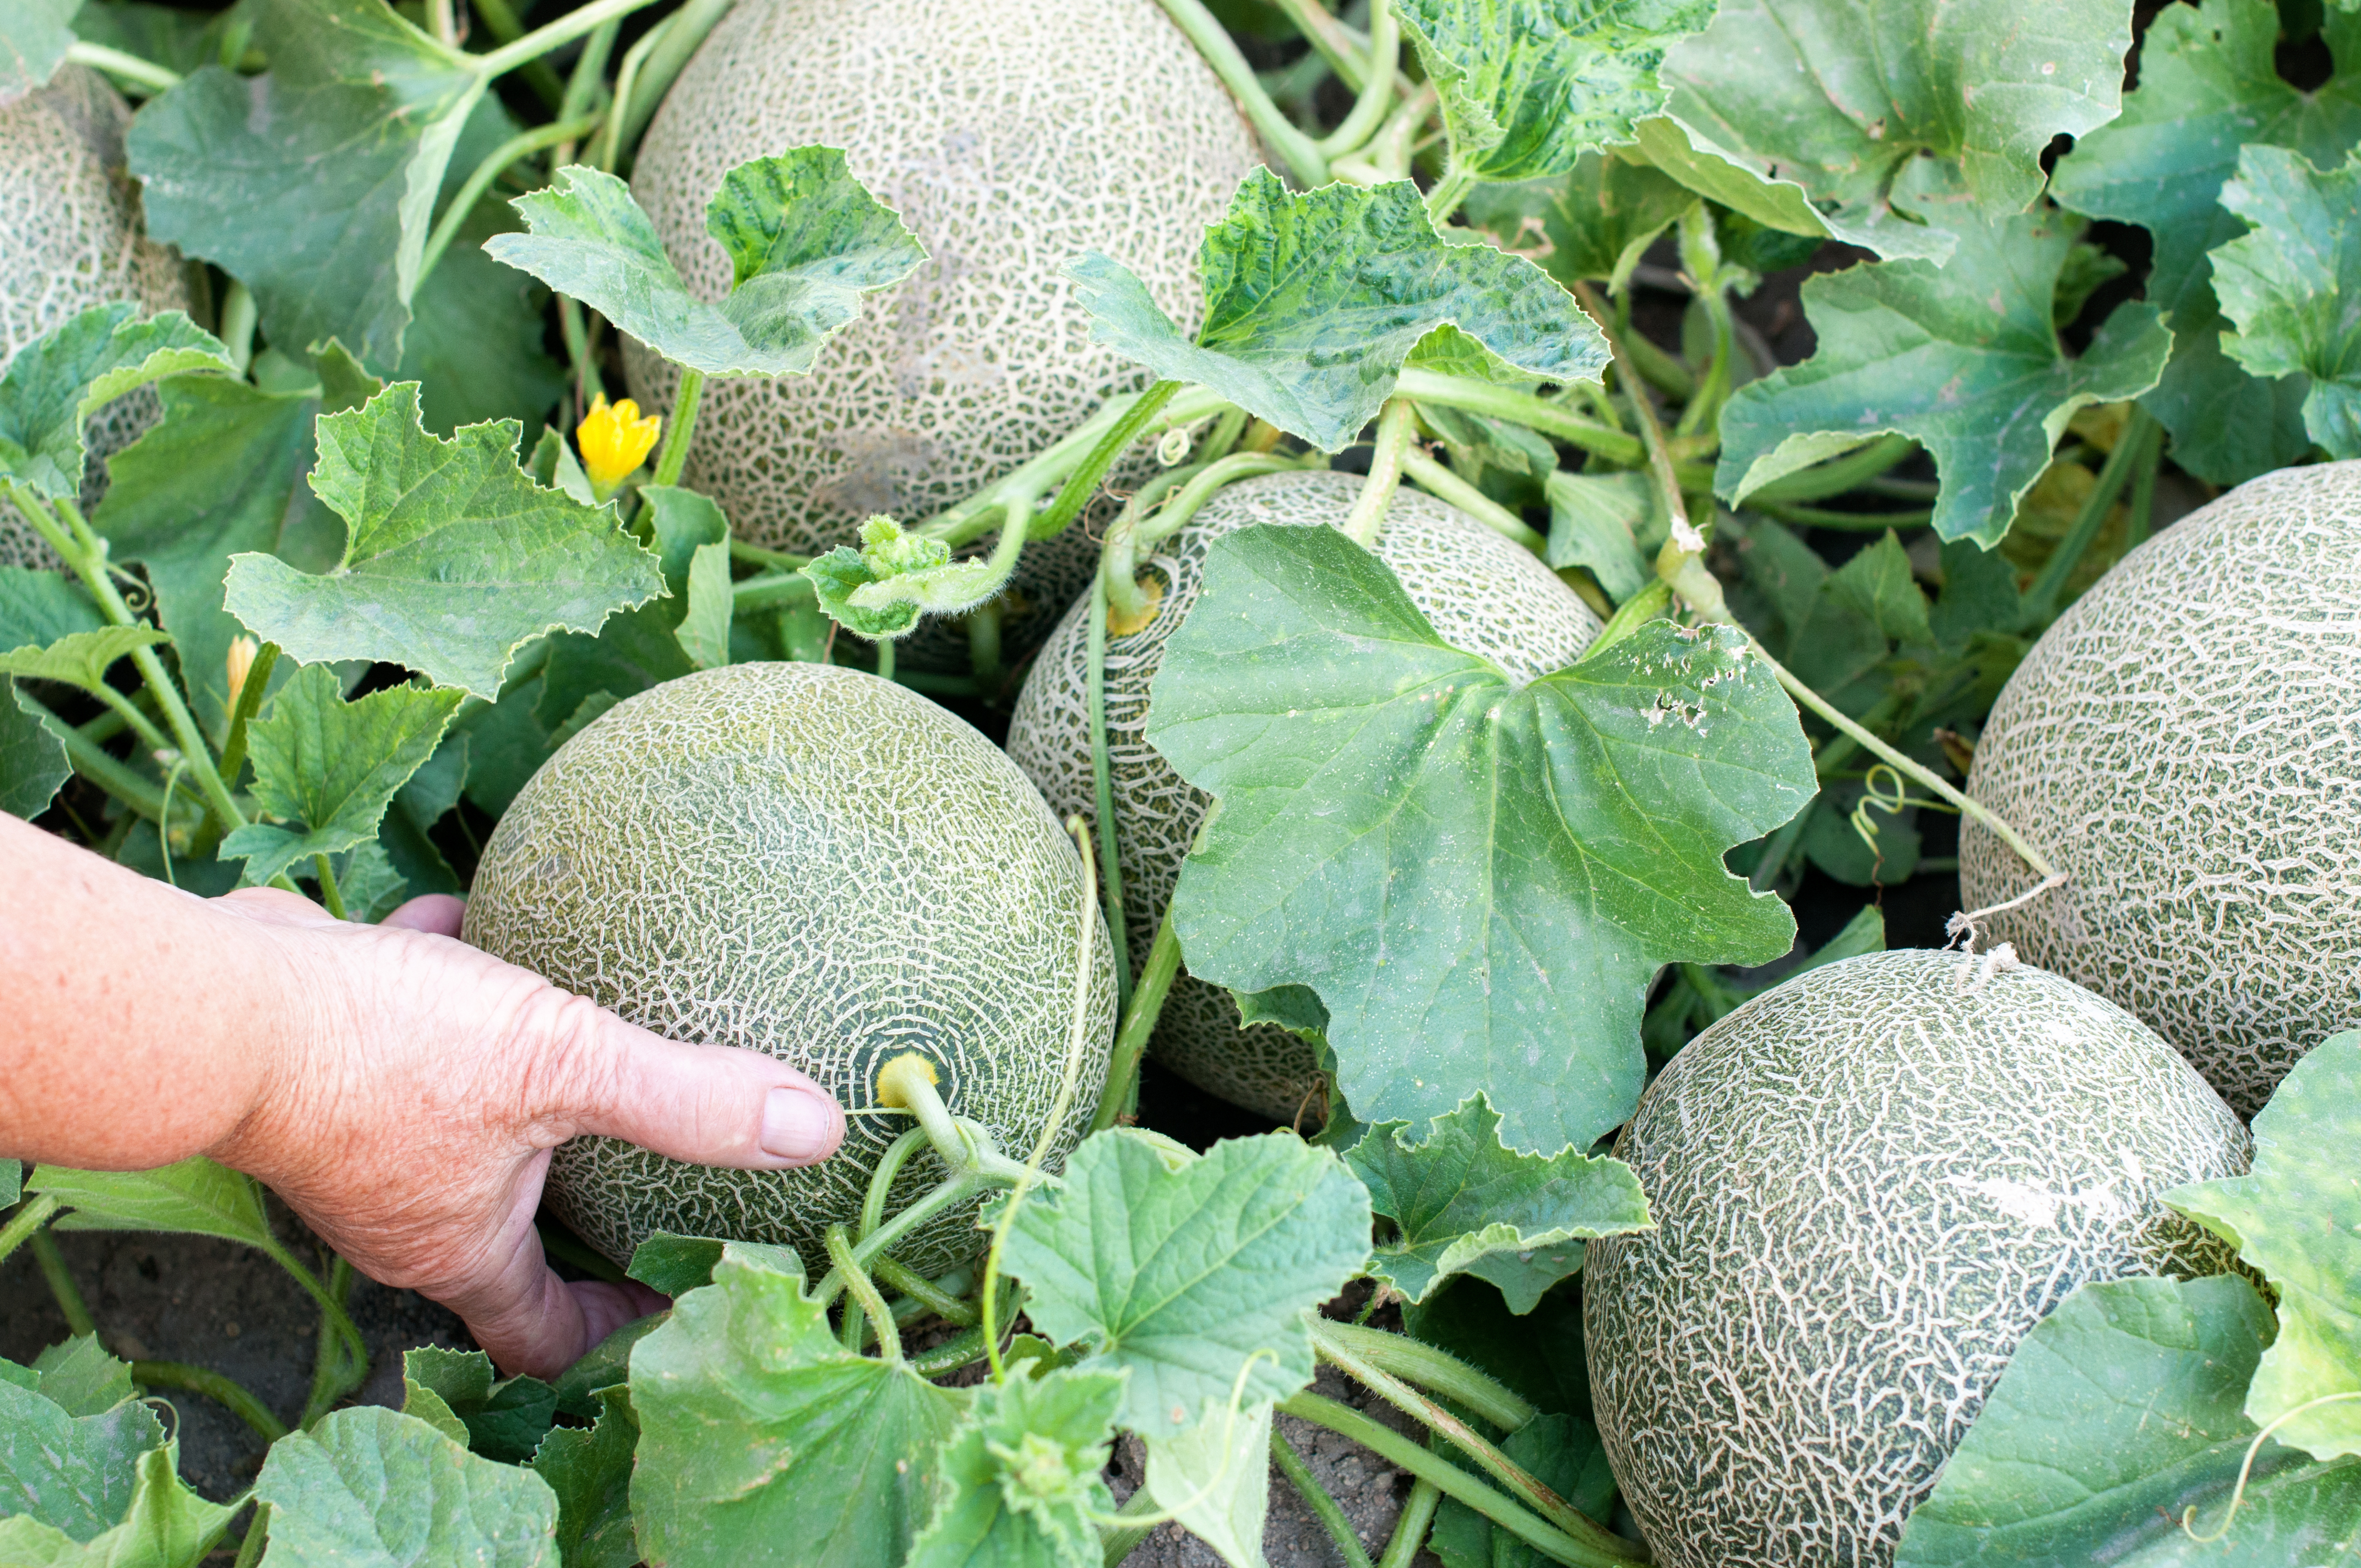 8 Tips For Growing The Sweetest Melons Modern Farmer A wilted appearance and sticky honeydew on melons are characteristics of heavy aphid infestations. 8 tips for growing the sweetest melons